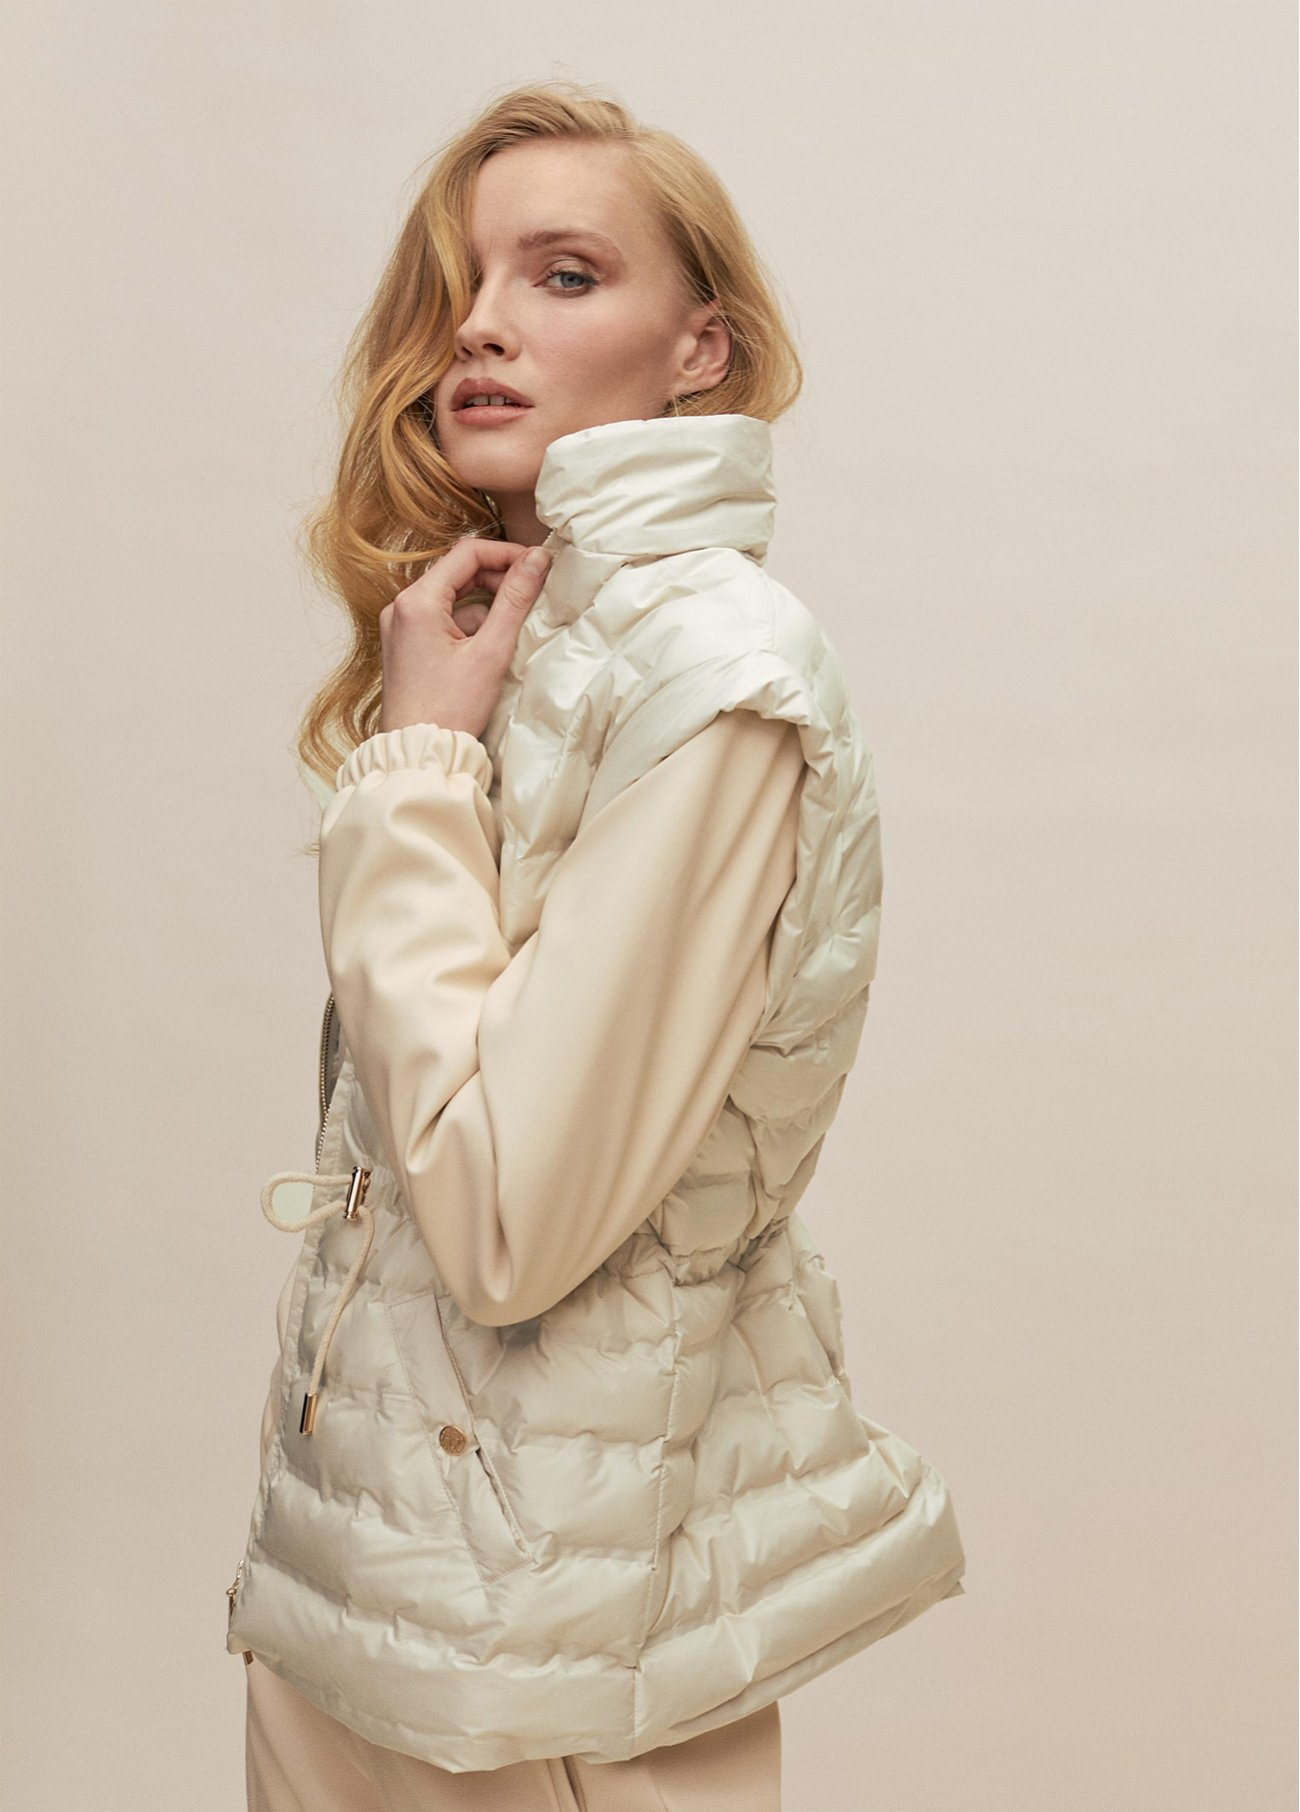 Combo Downjacket with shoulder pads